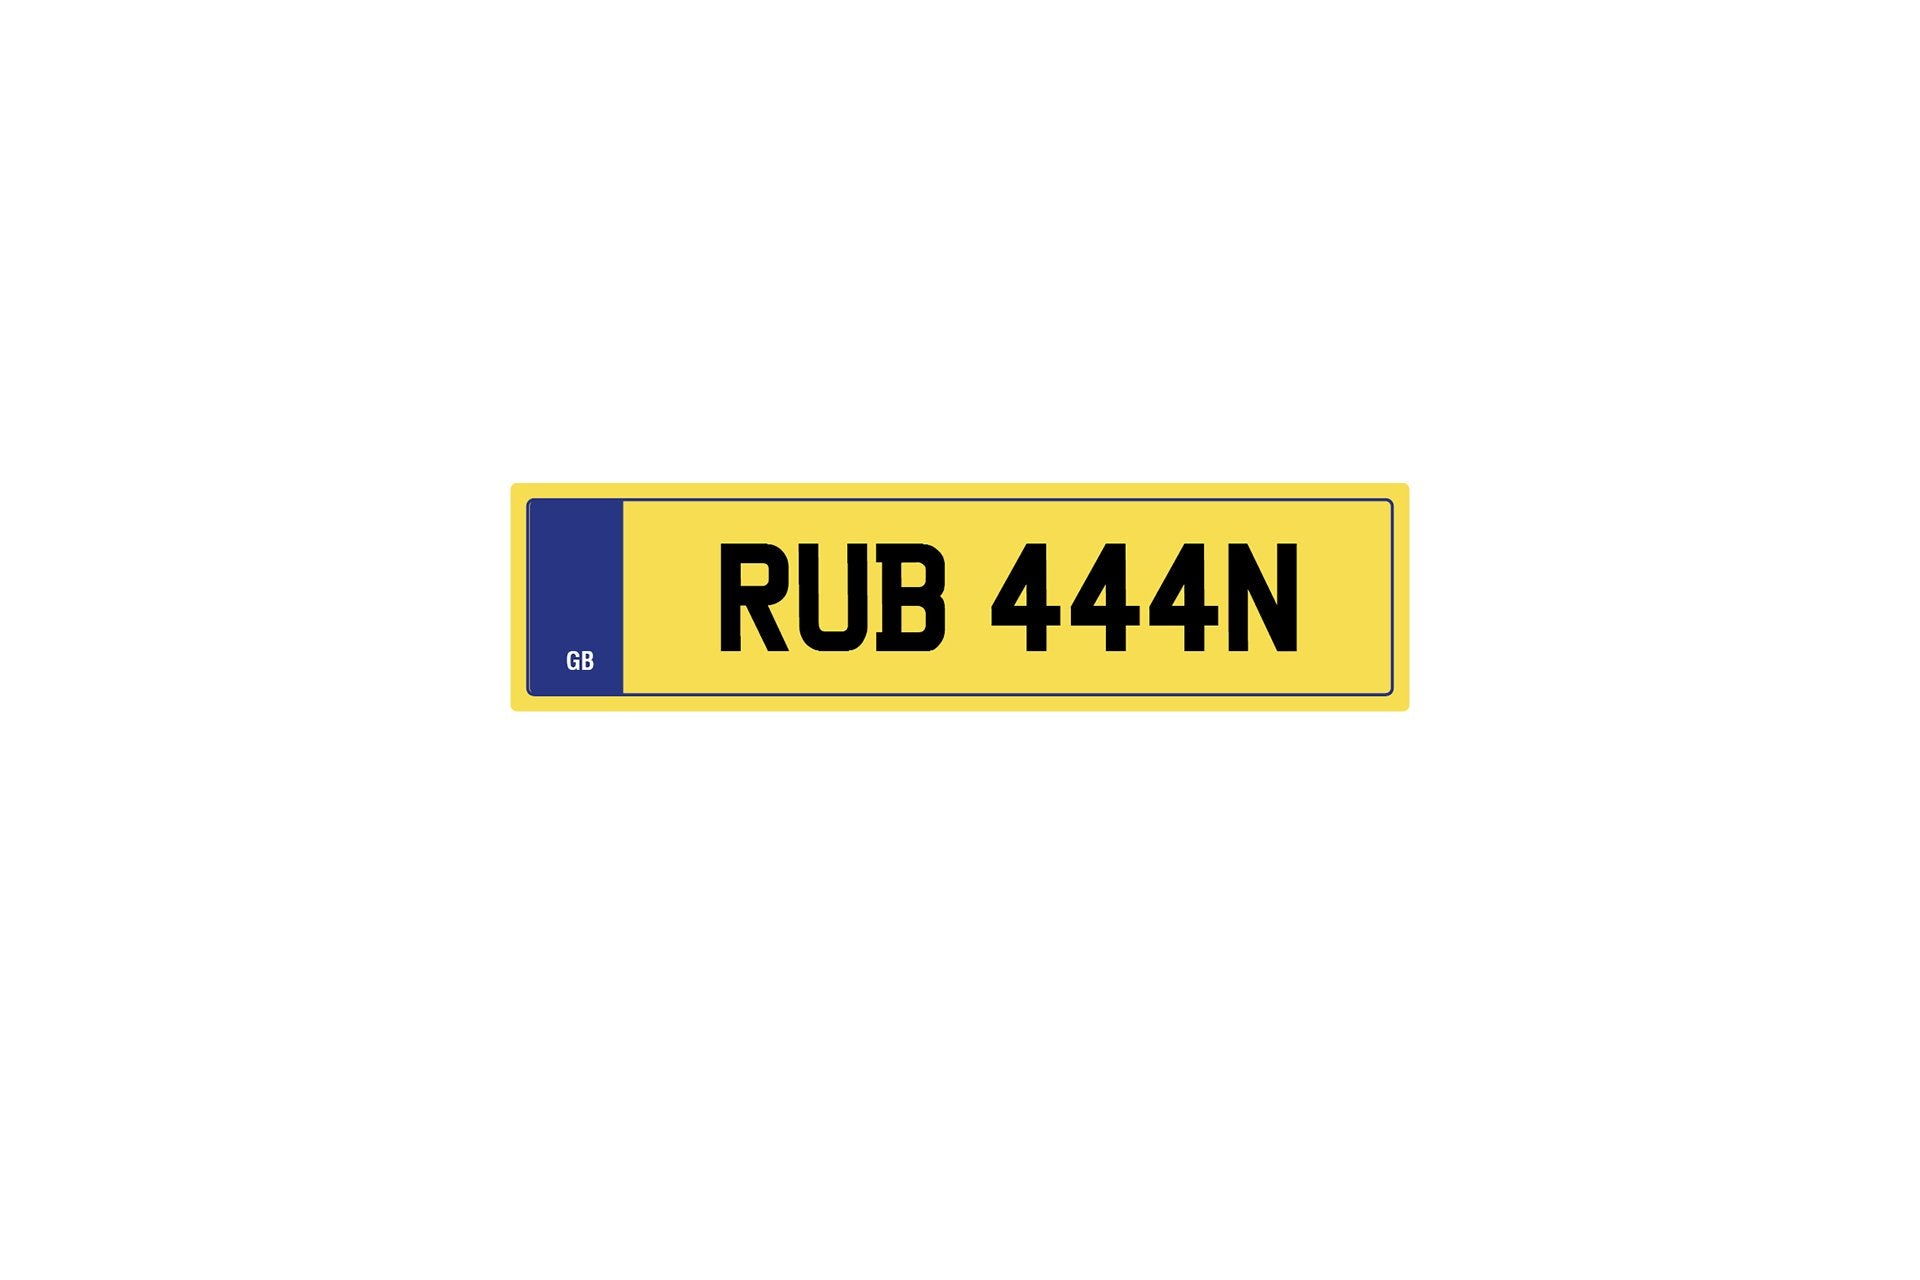 Private Plate Rub 444N by Kahn - Image 209